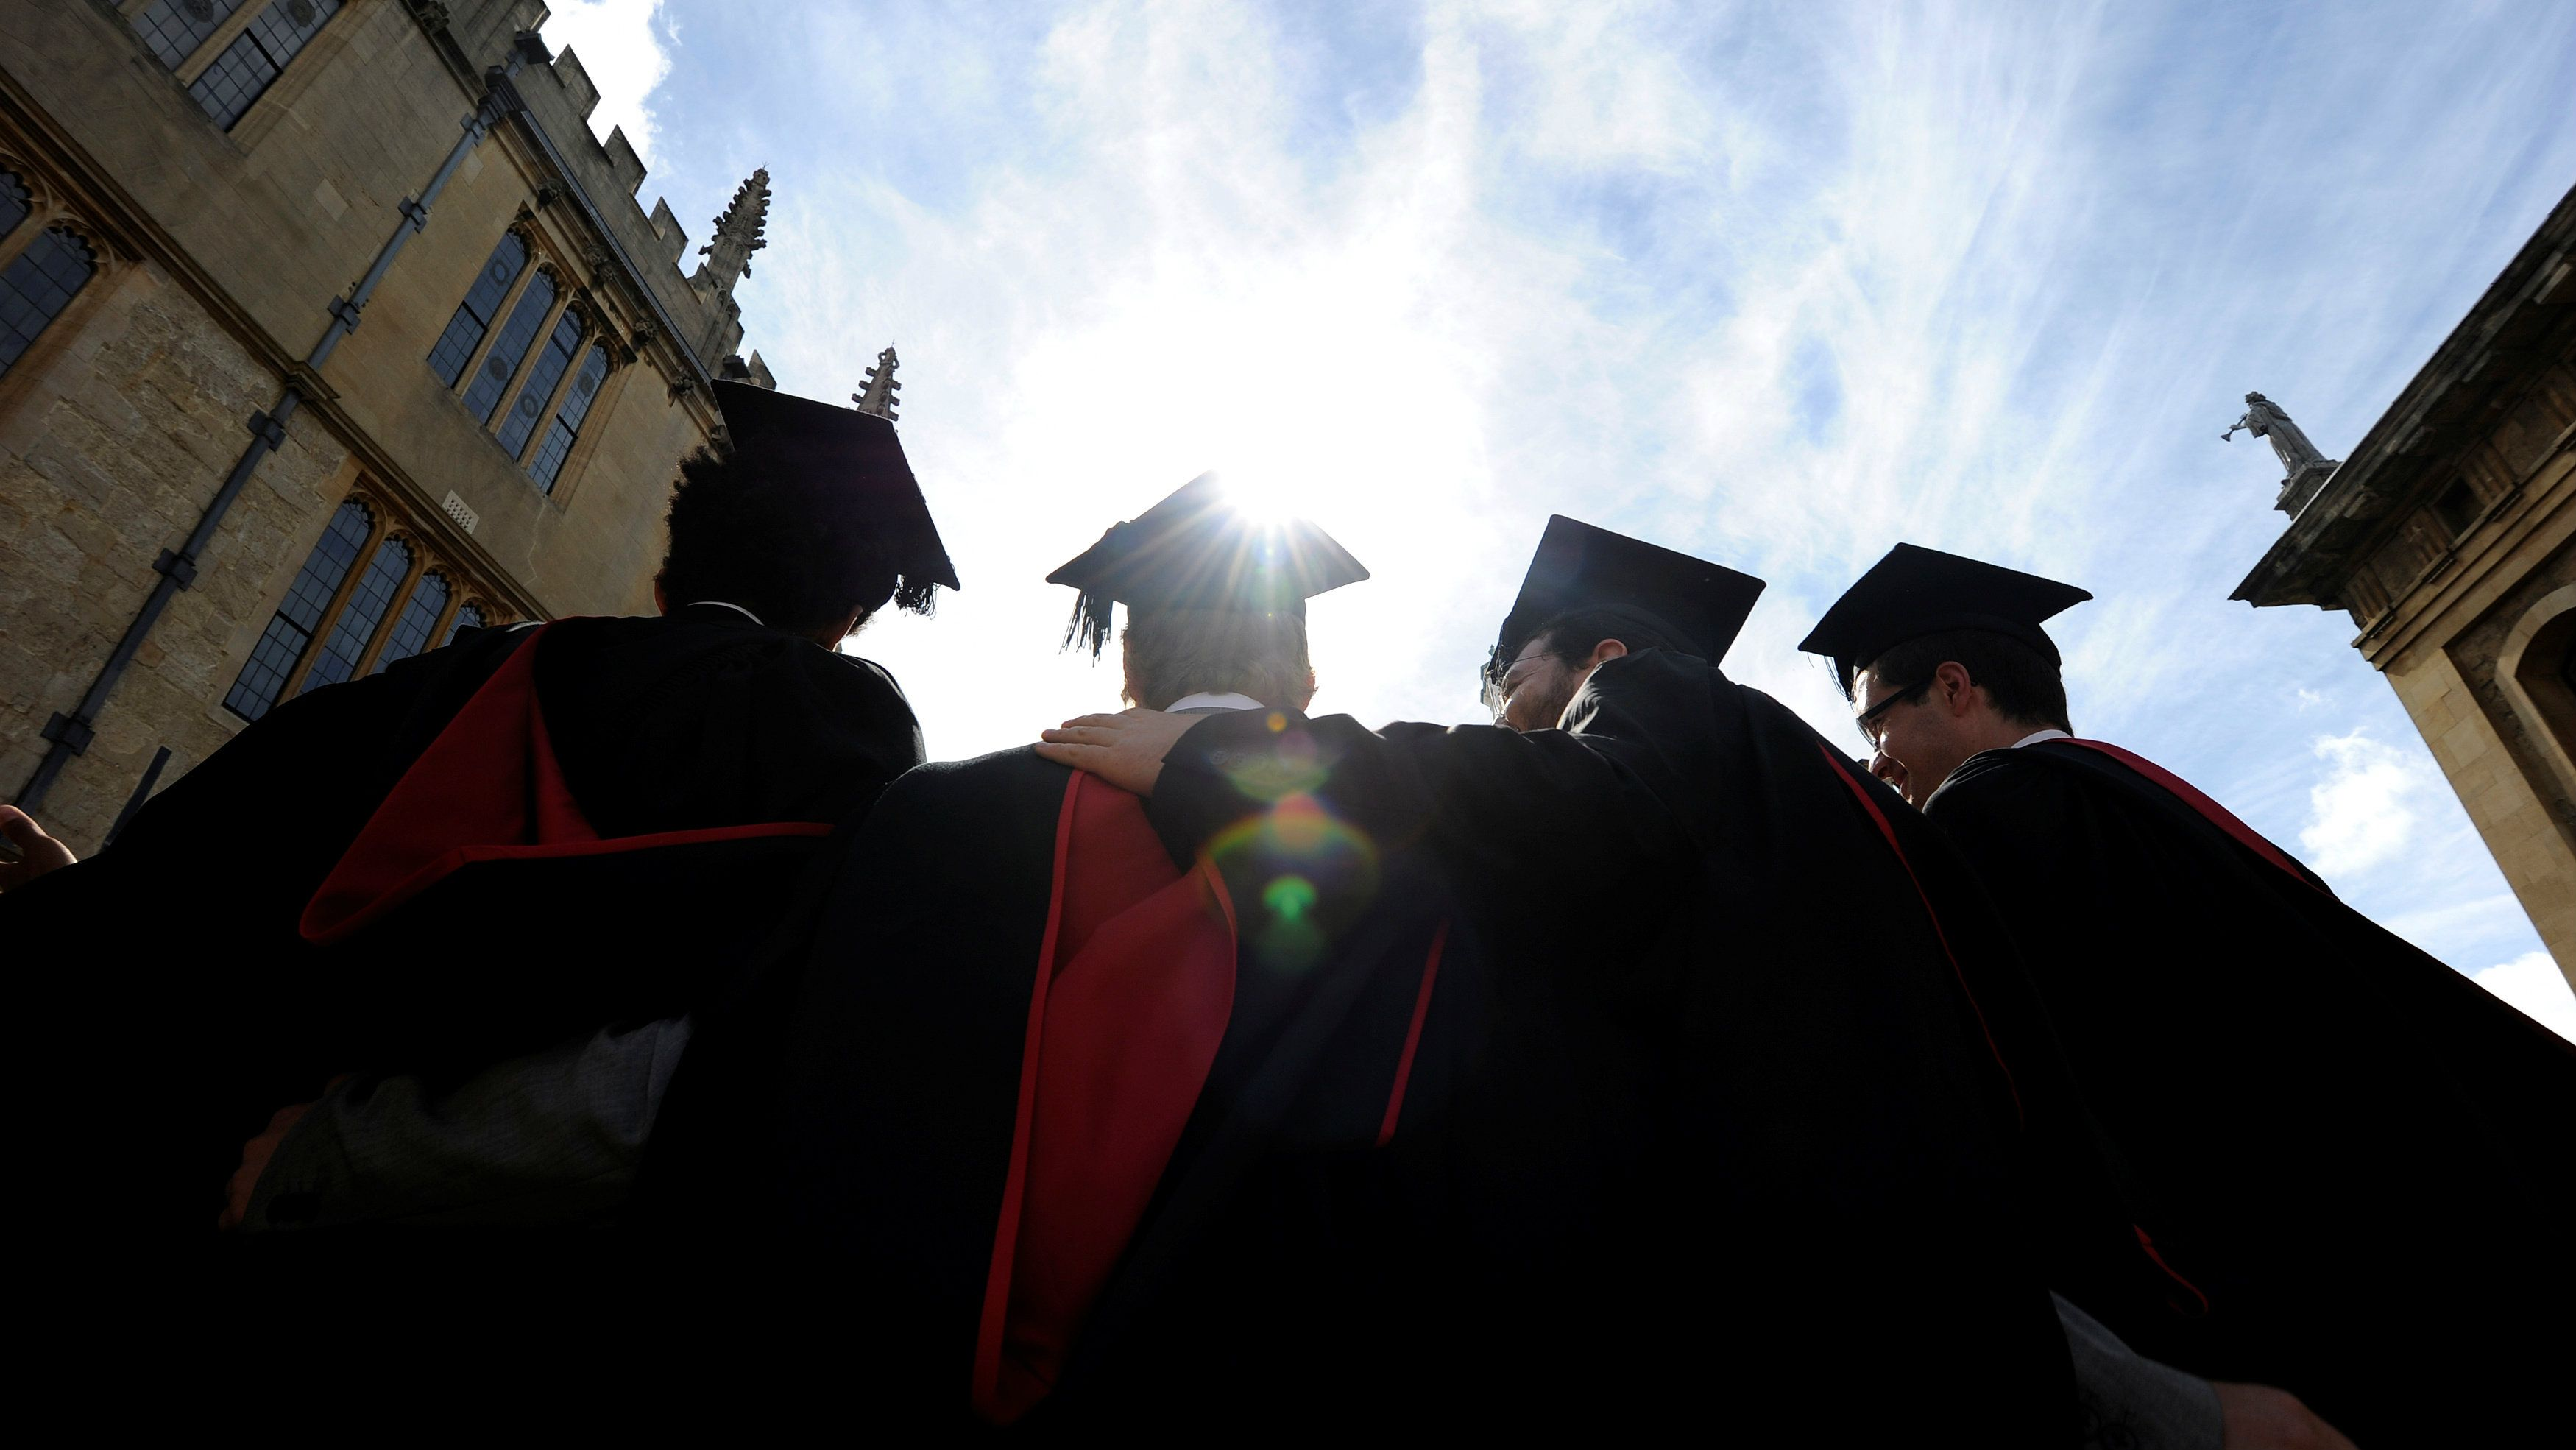 Students graduating at the University of Oxford.